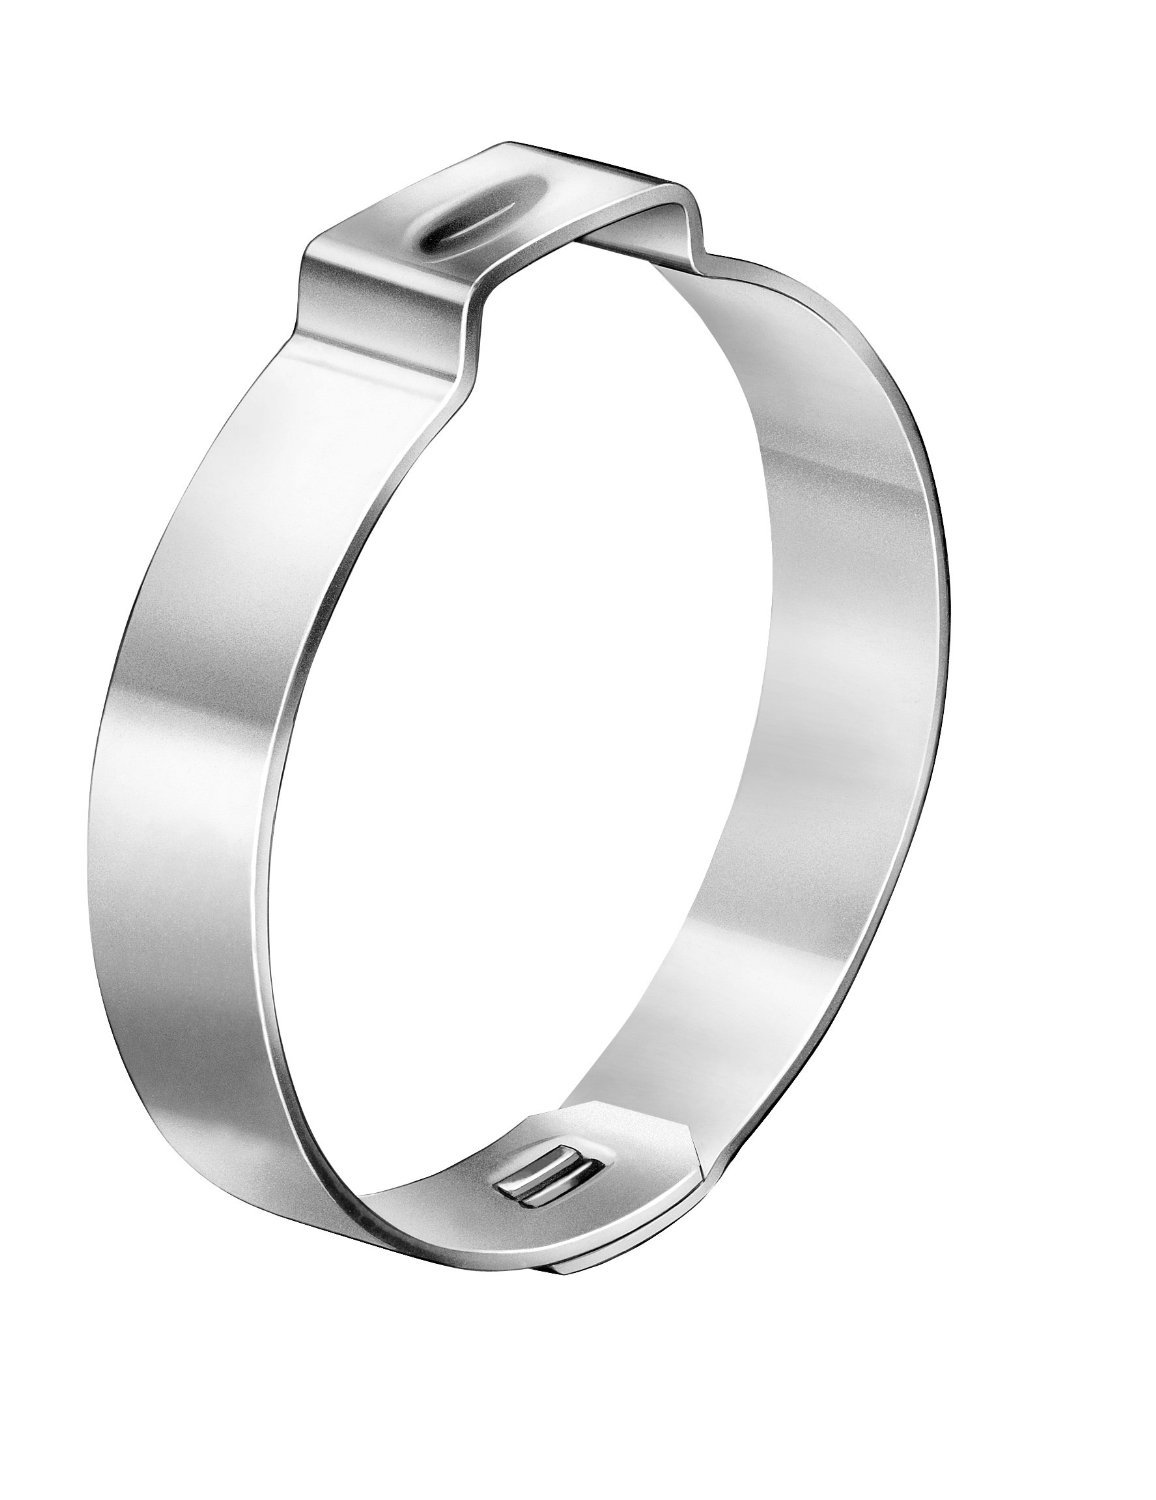 Oetiker 10500010 Zinc-Plated Steel Hose Clamp with Mechanical Interlock, One Ear, 7 mm Band Width, Clamp ID Range 15.7 mm (Closed) - 18.5 mm (Open) (Pack of 500)